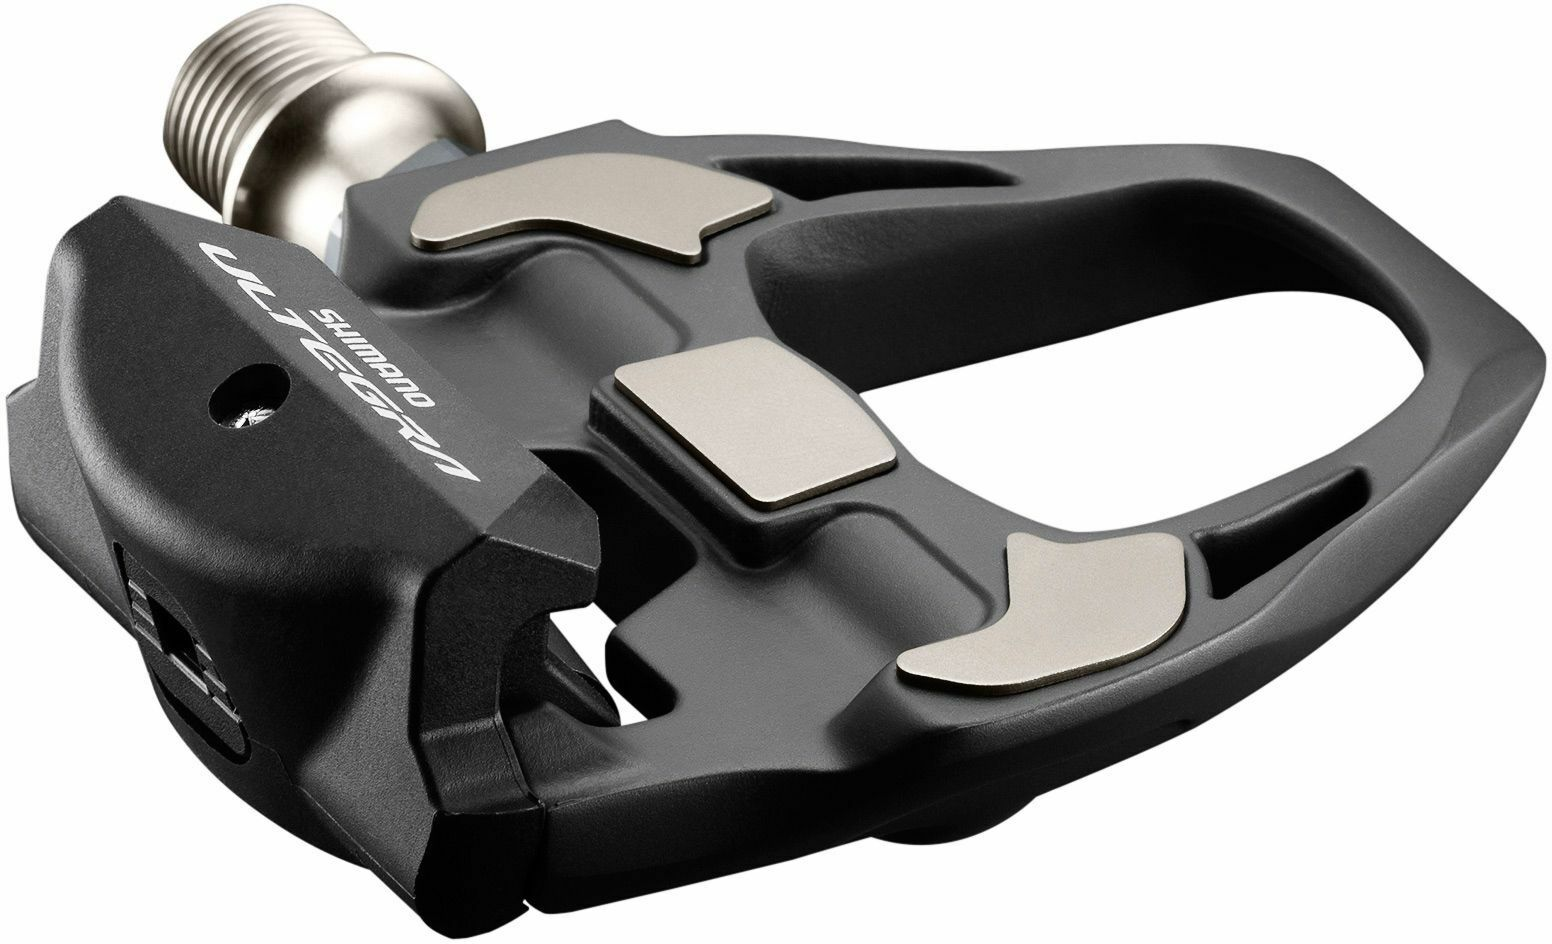 Shimano PD-8000 Spd-Sl Carbono Pedales ultegra